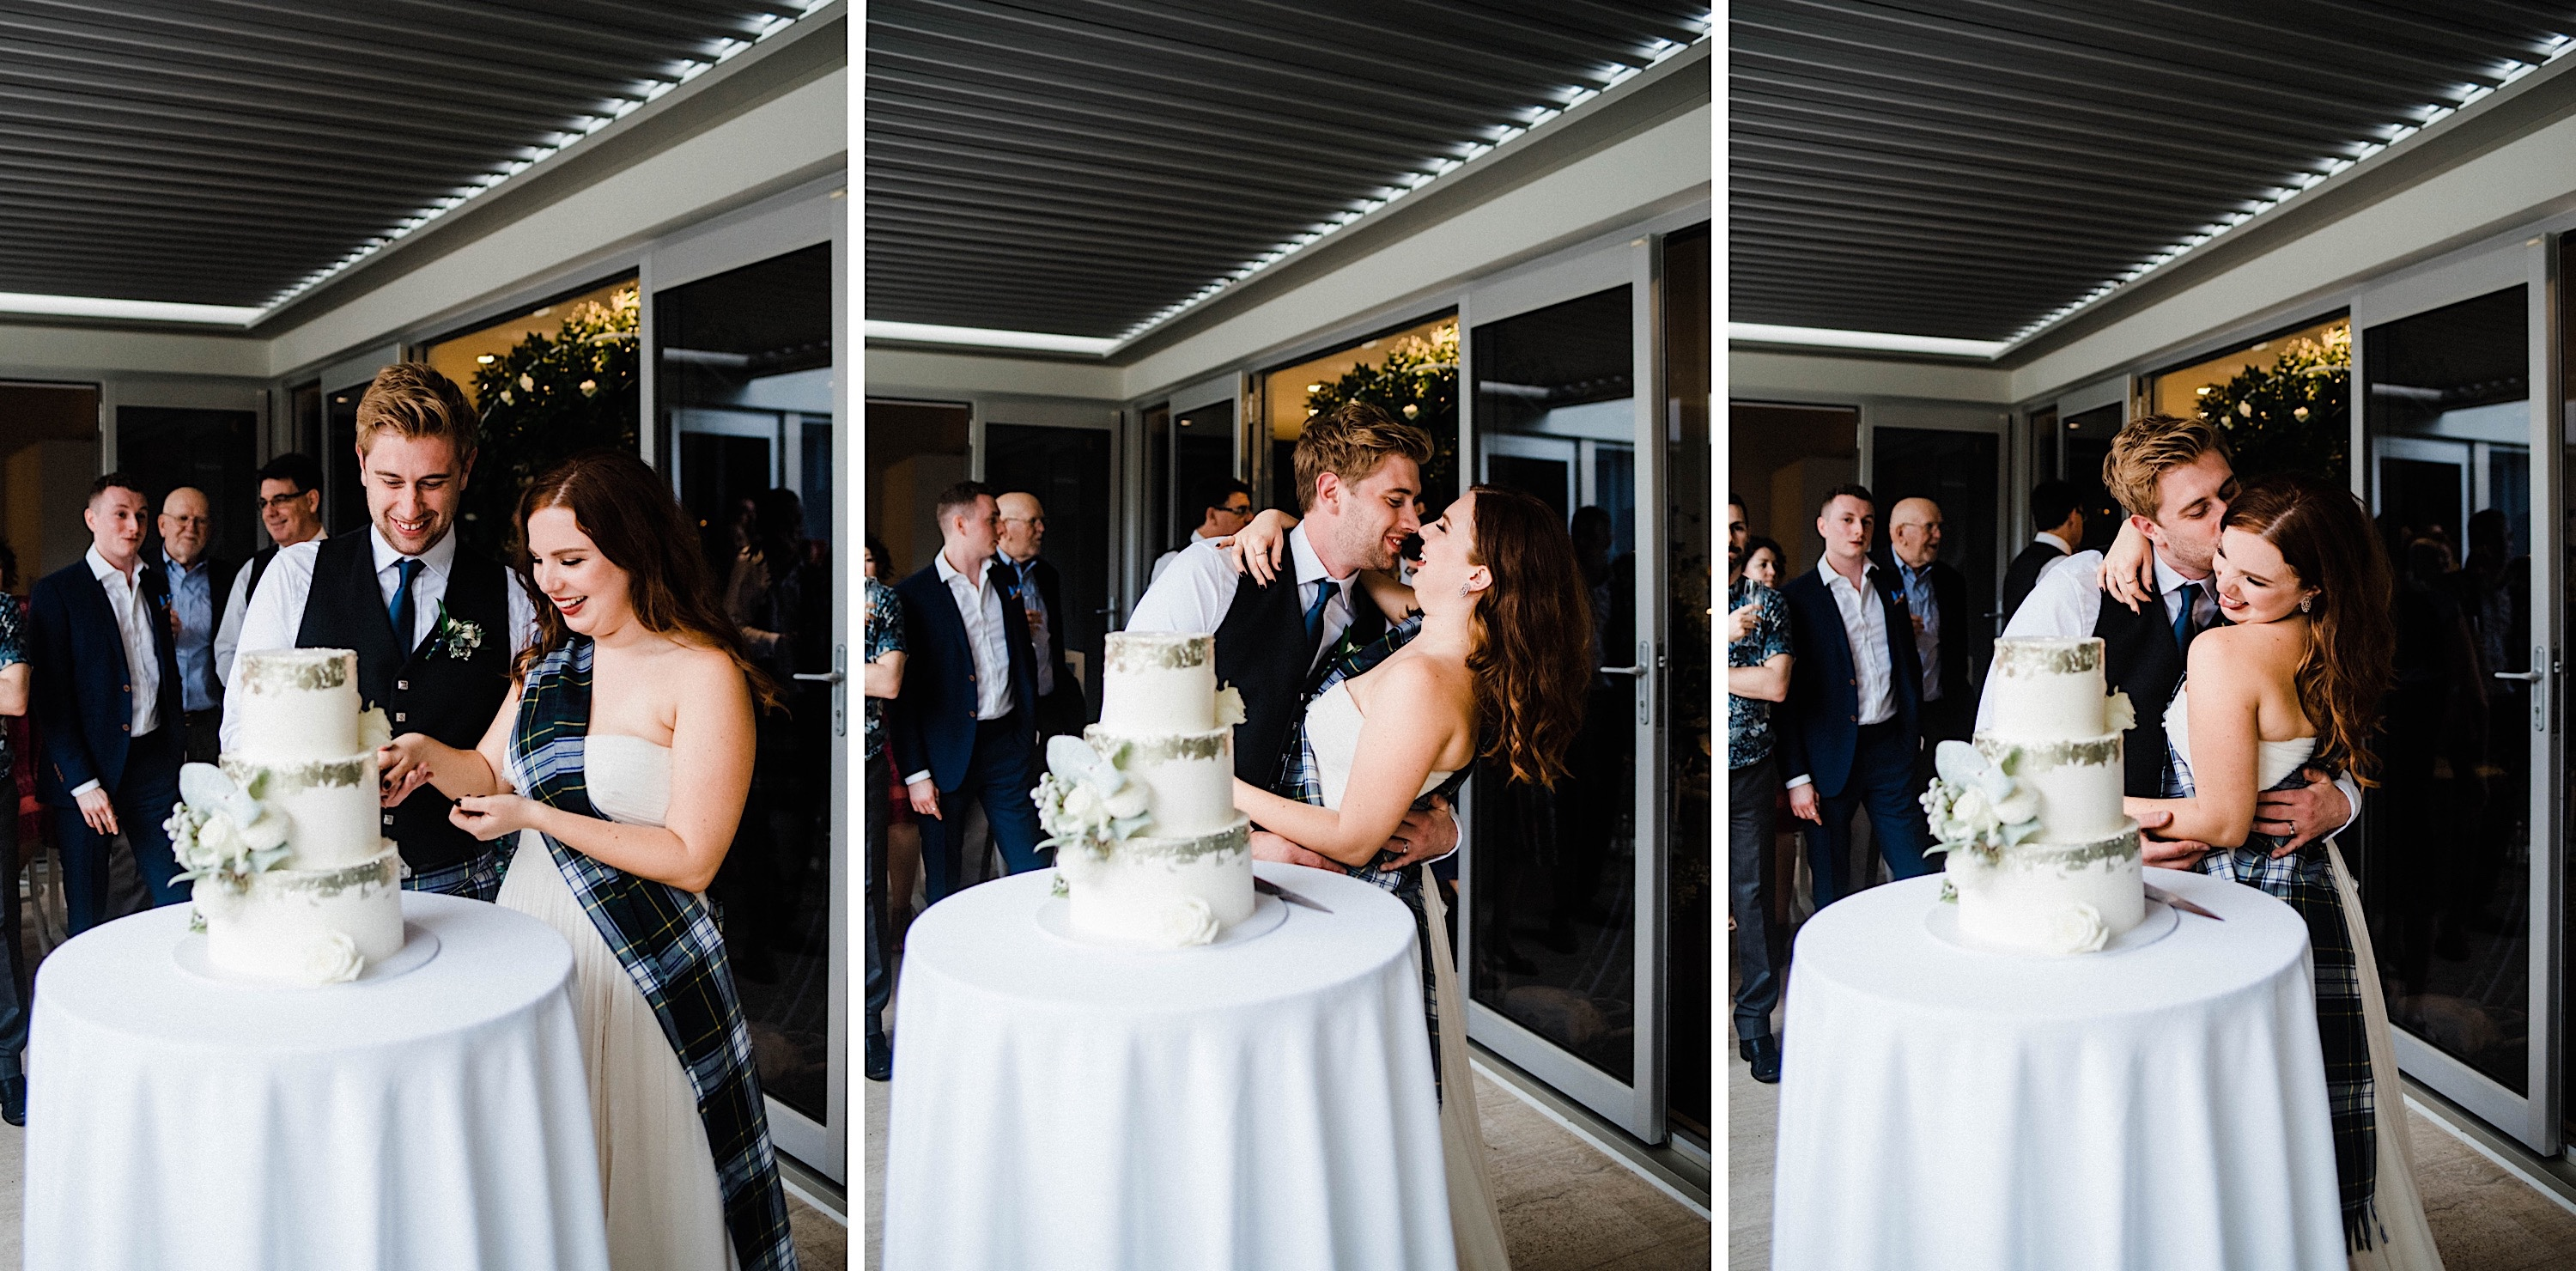 Three photos of the bride & groom cutting the cake at their Sustainable Backyard Wedding in Nedlands.